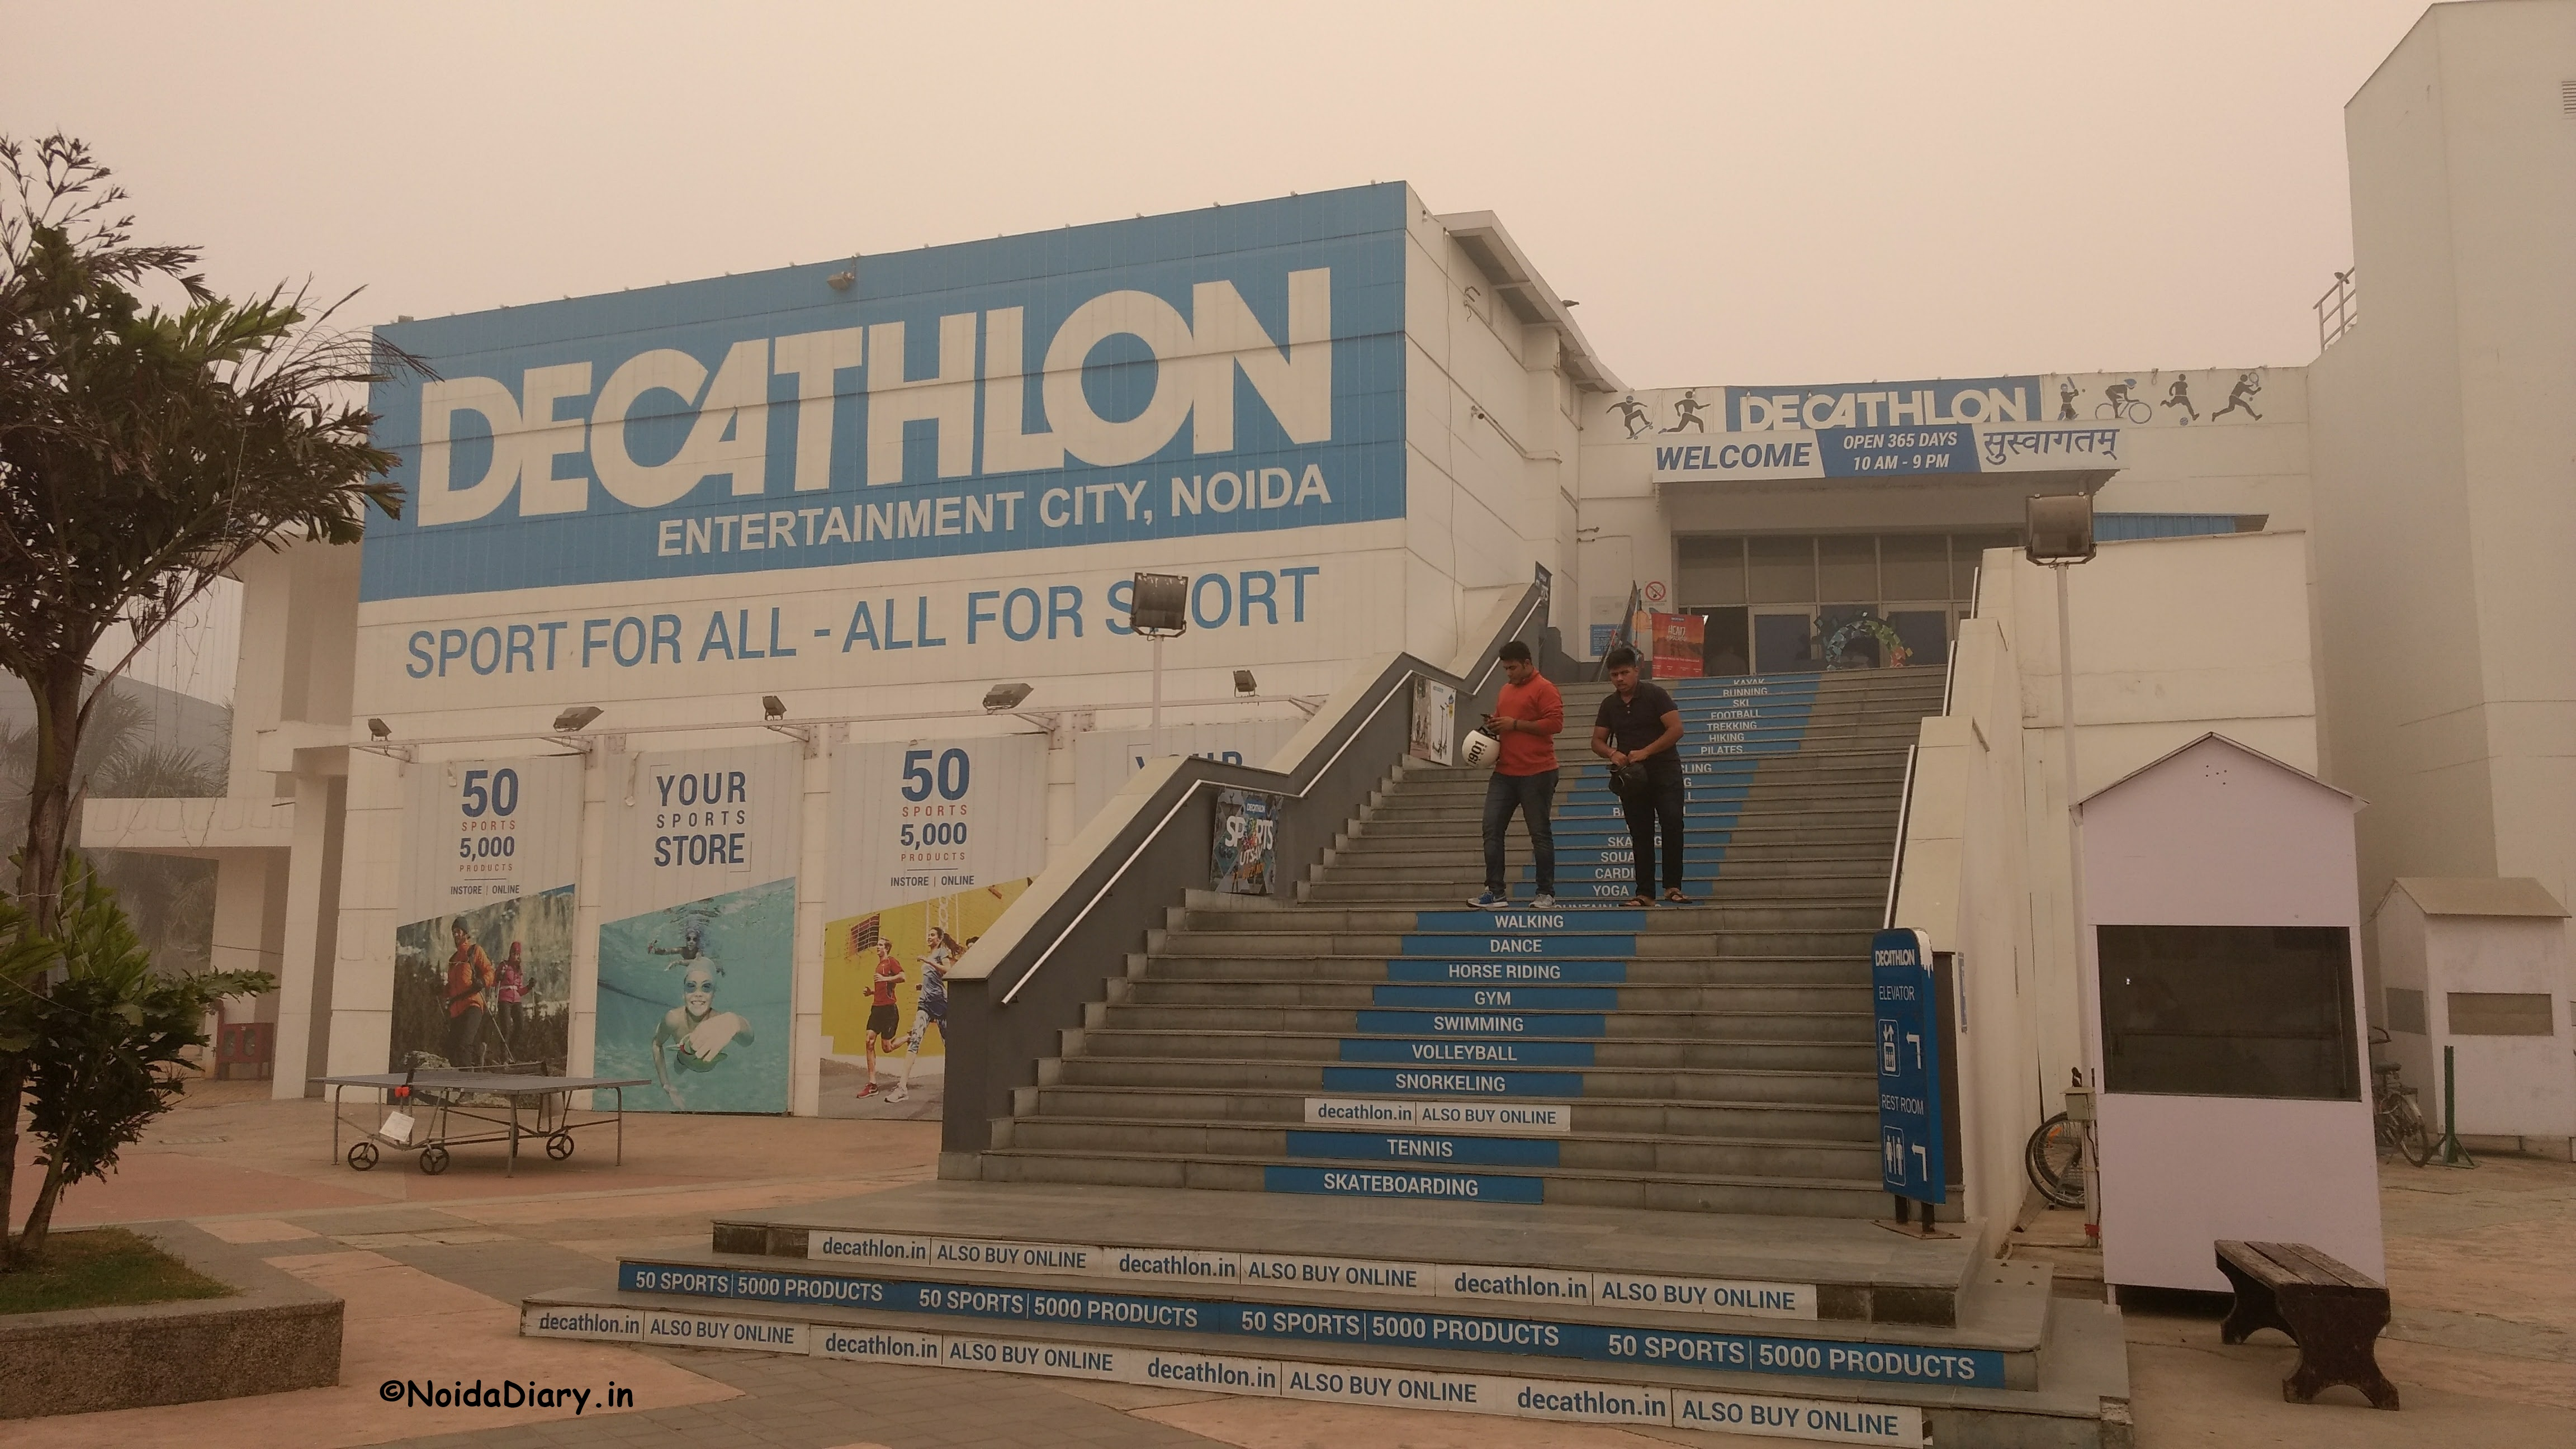 Decathlon to Open its 12th Store at Noida, shortly